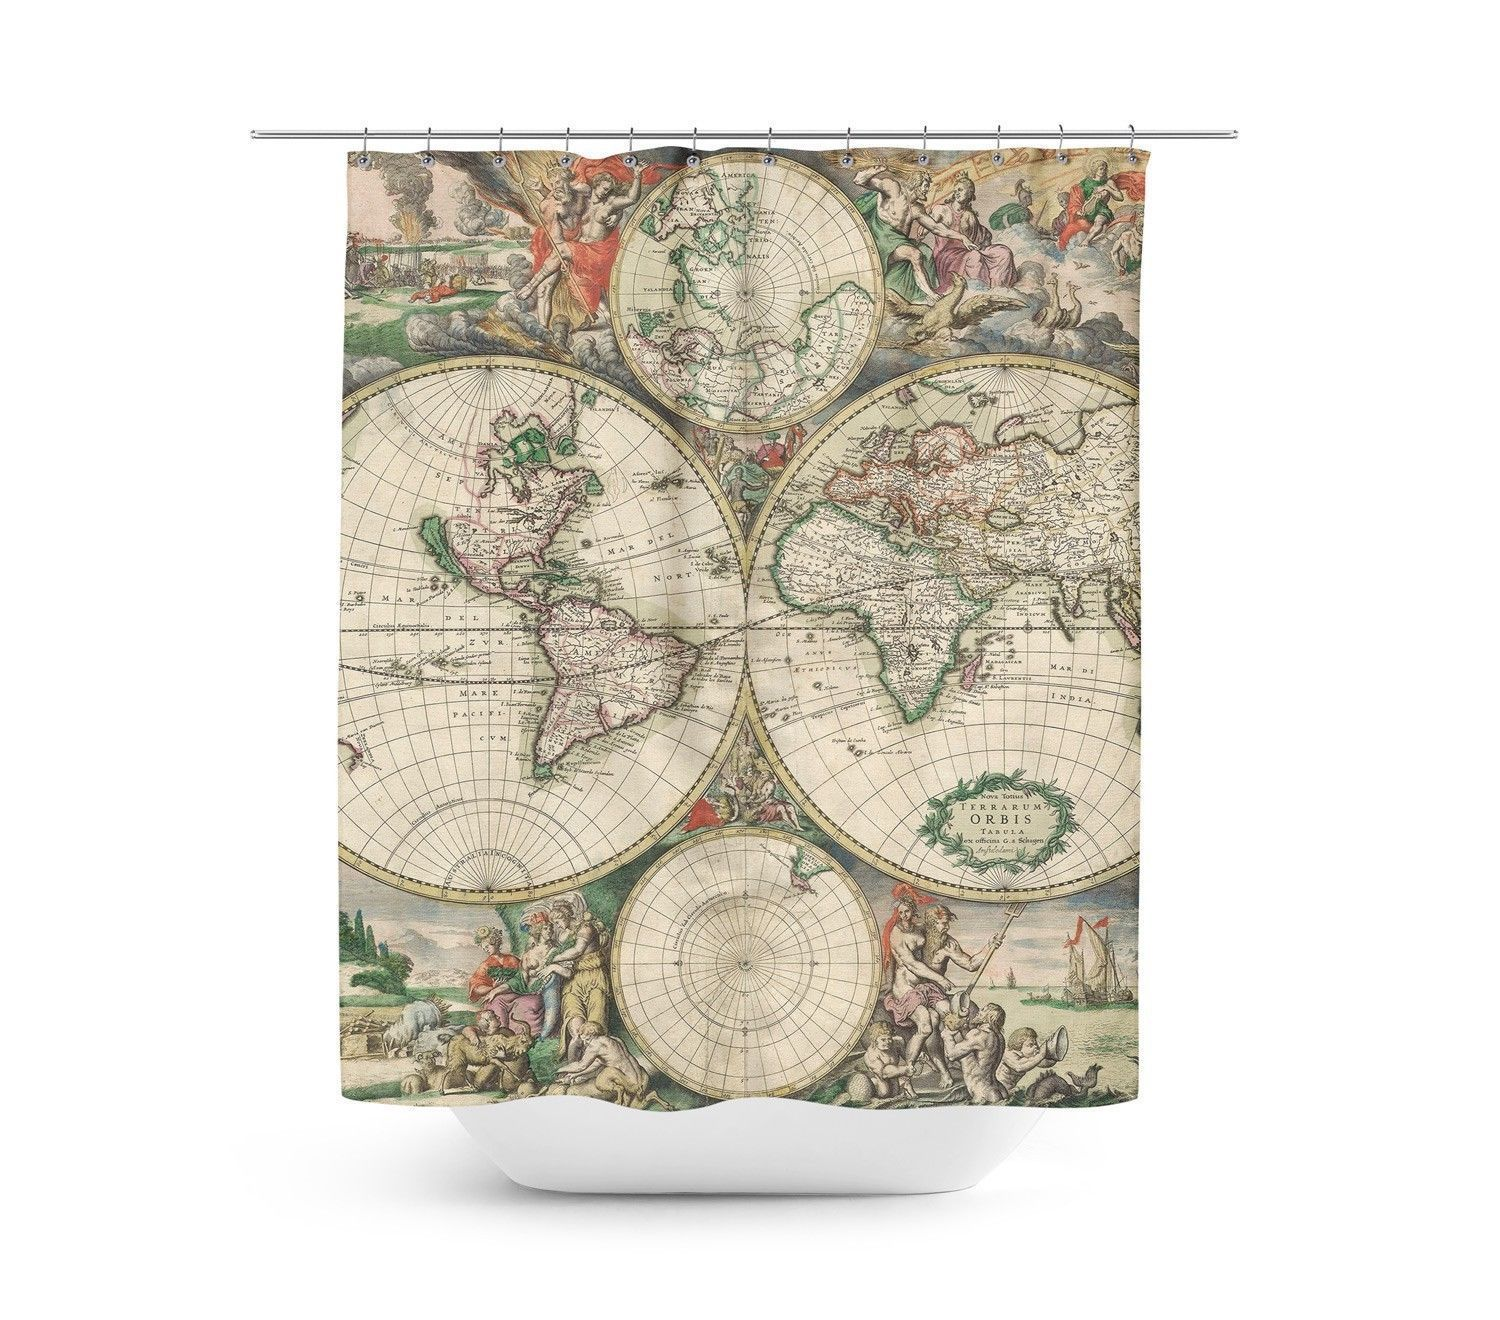 1689 antique world globe map shower curtain vinyl anti bacterial 1689 antique world globe map shower curtain unique in 4 sizes for any bathroom gumiabroncs Image collections